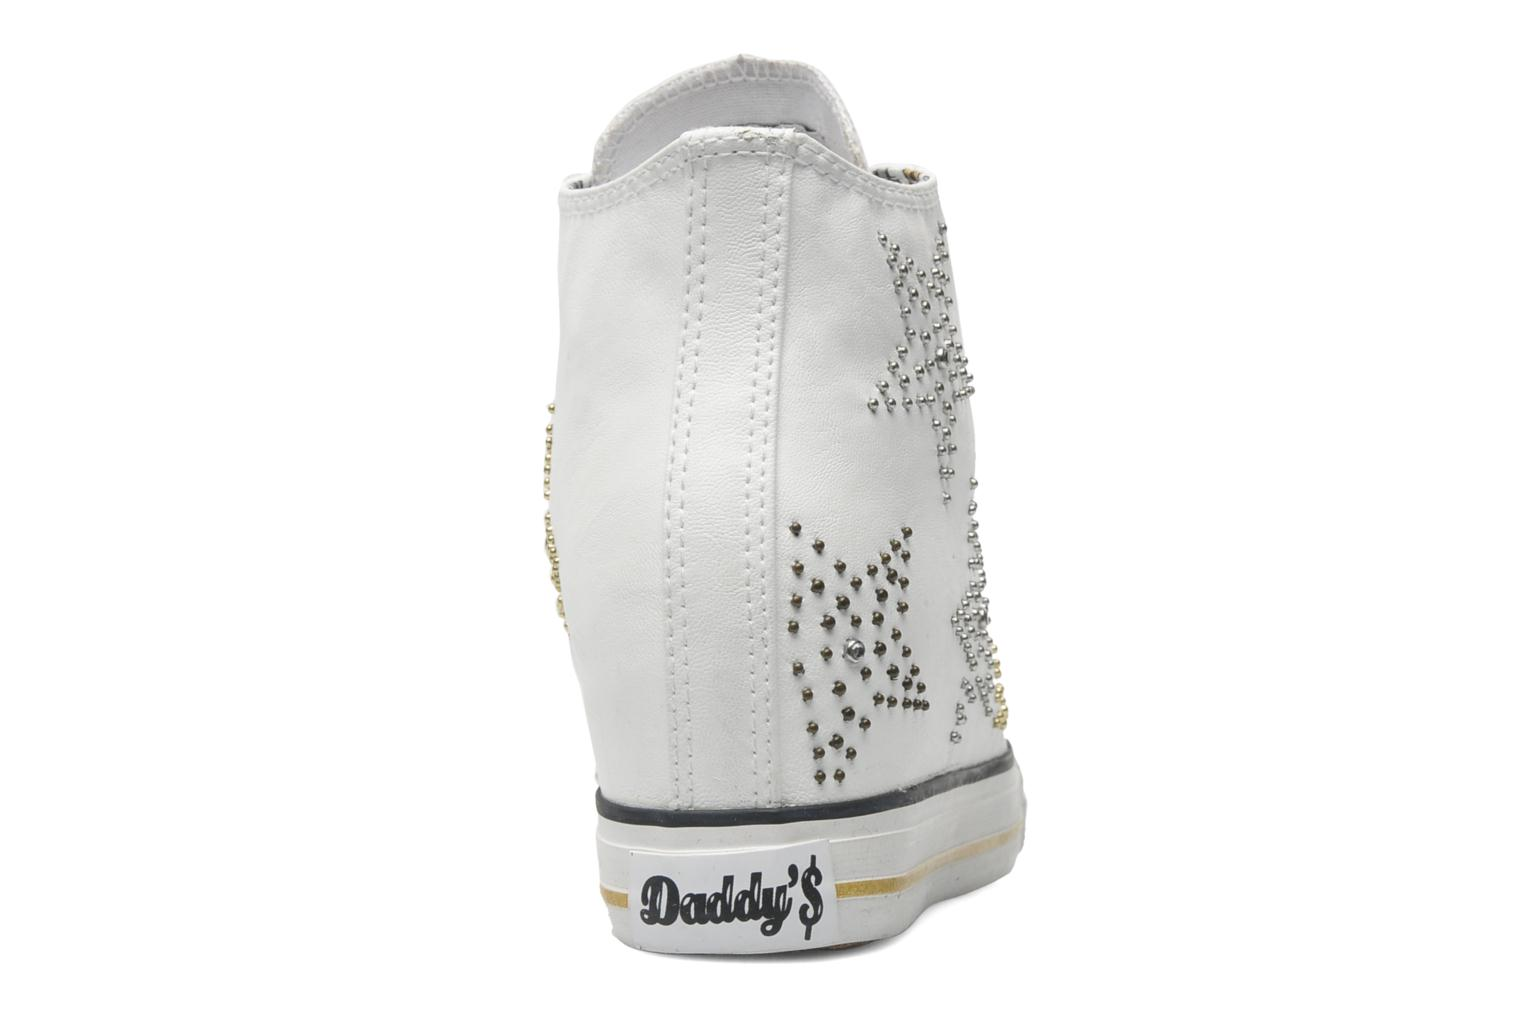 Deportivas Skechers Daddy's money - Stargazing 39419 Blanco vista lateral derecha